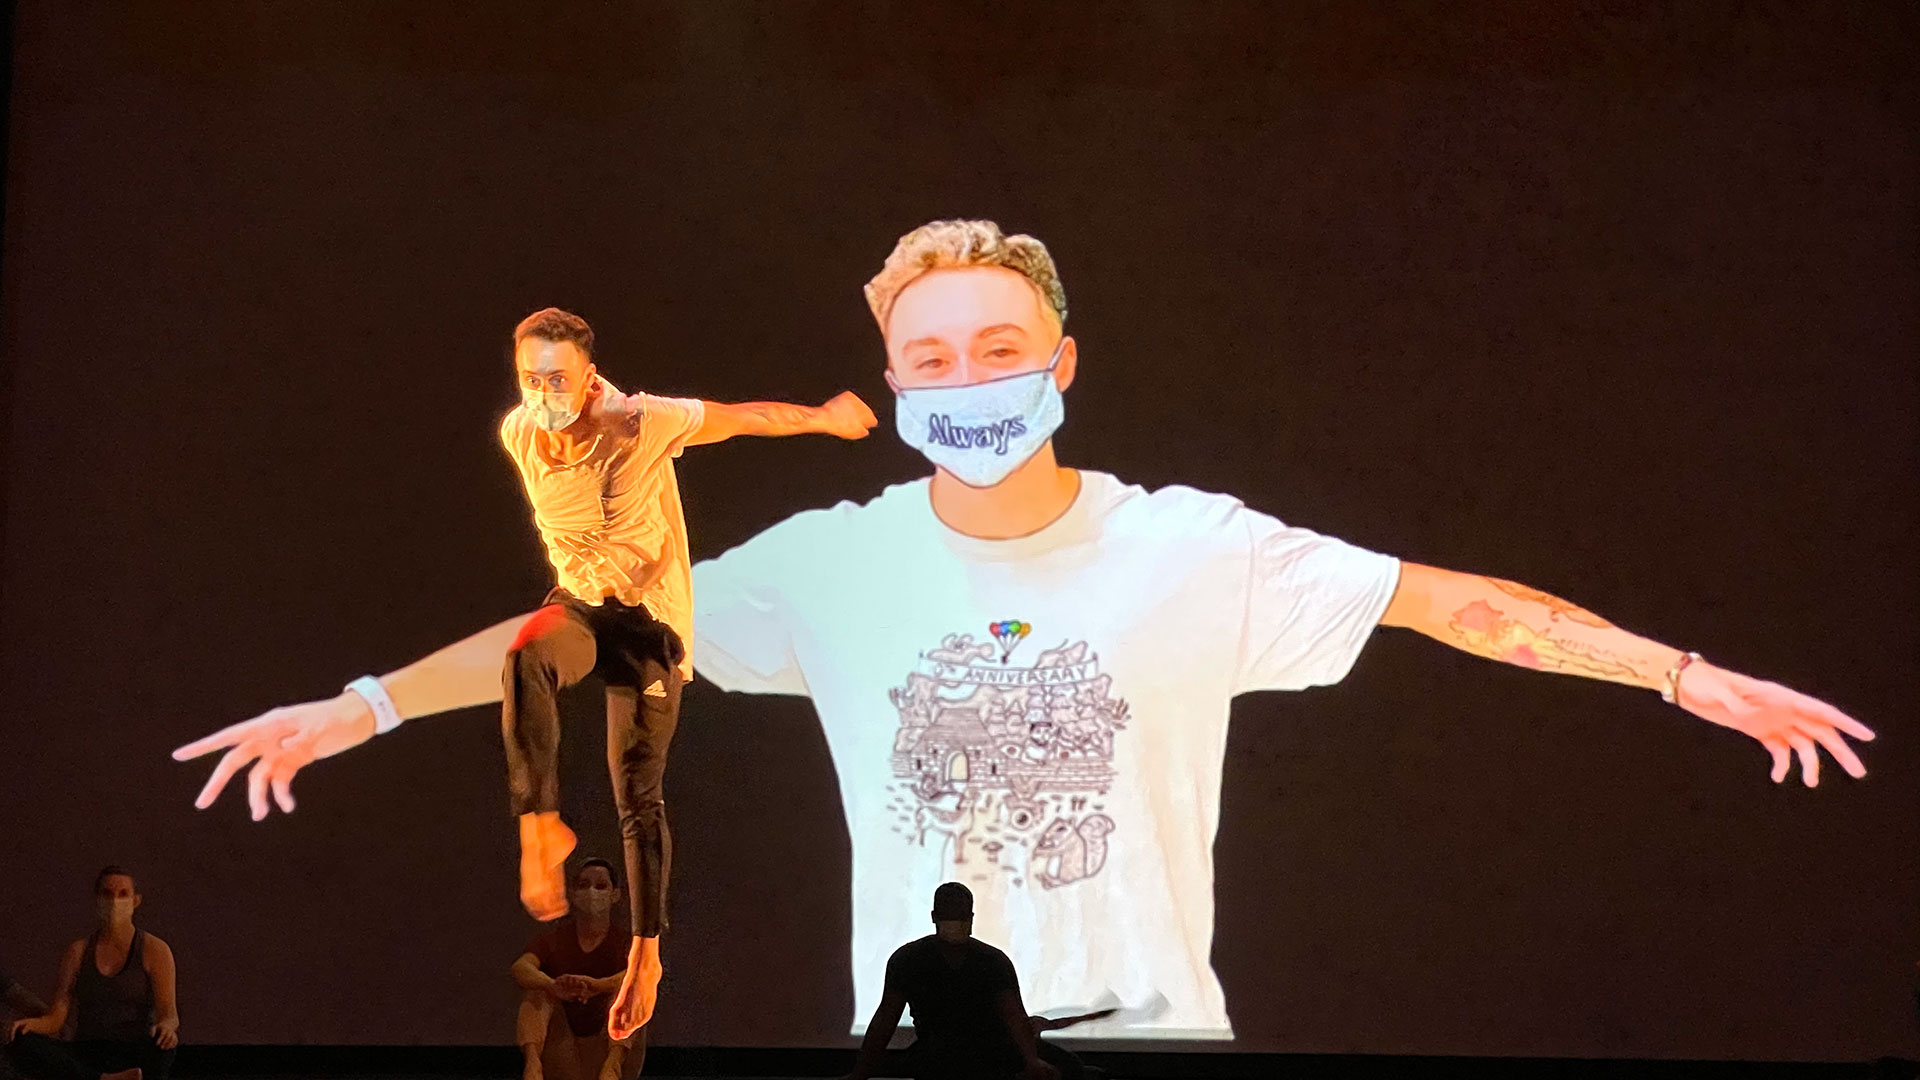 Solo dancer performs while large image of himself is projected behind him.